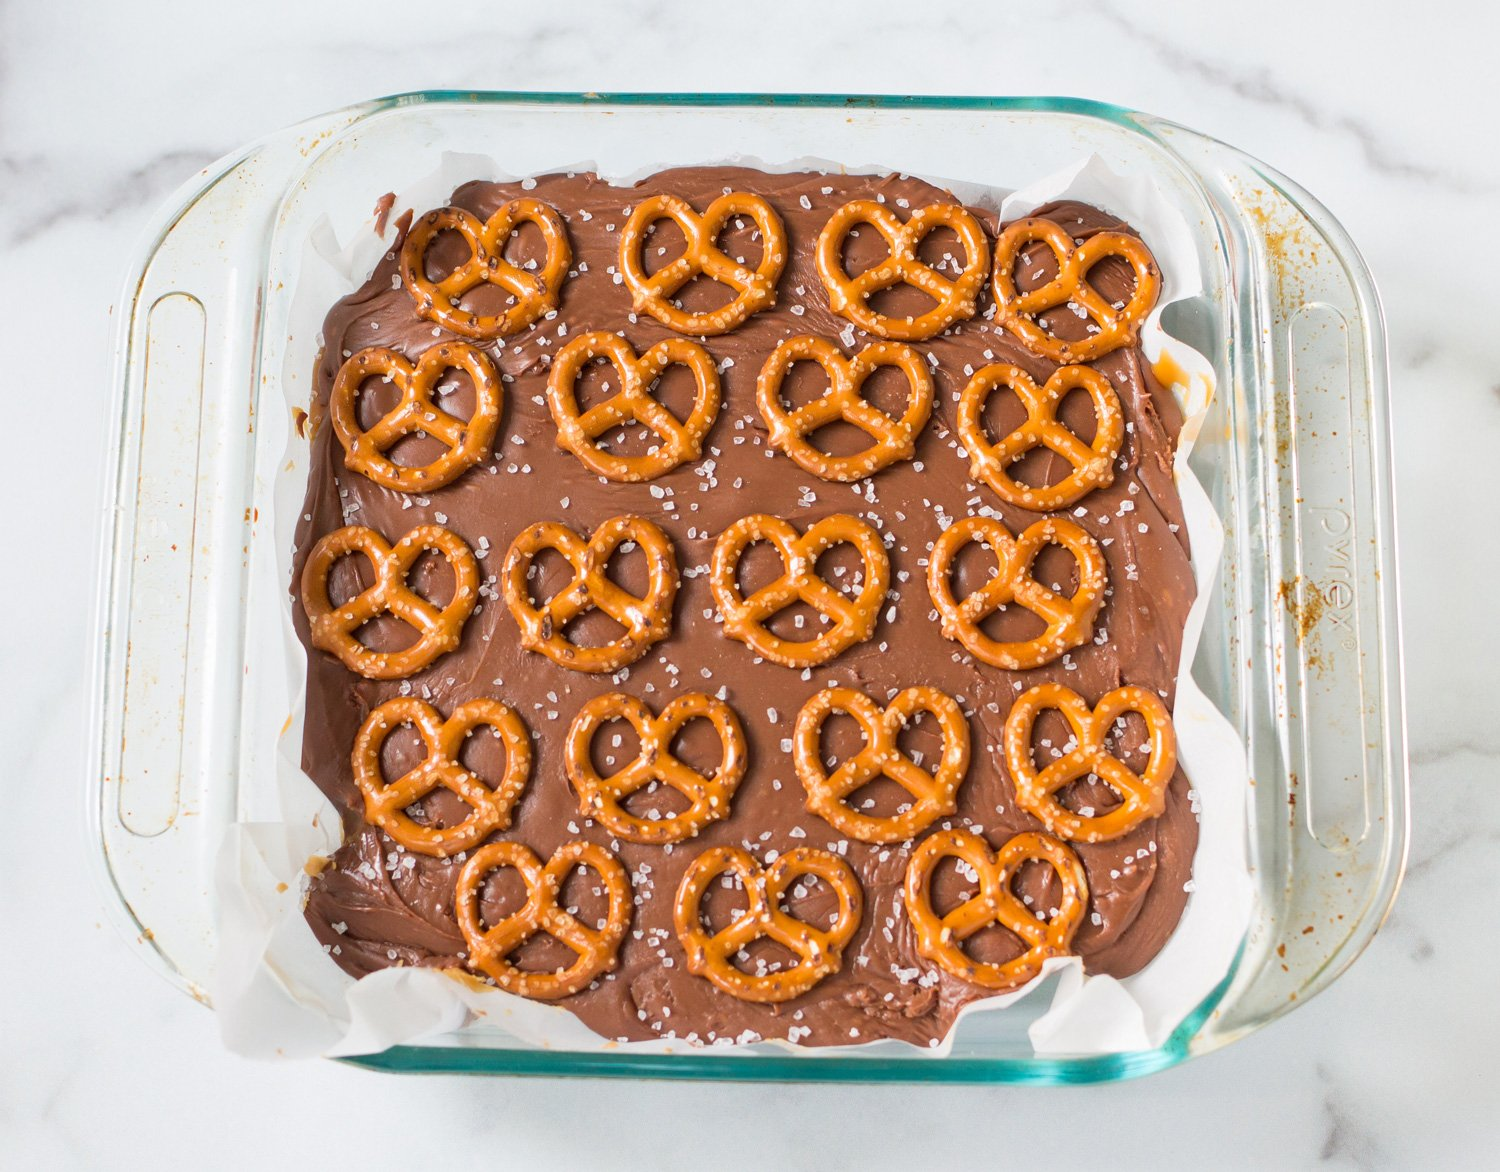 Salted Chocolate Caramel Pretzel Bars in a Glass Baking DIsh